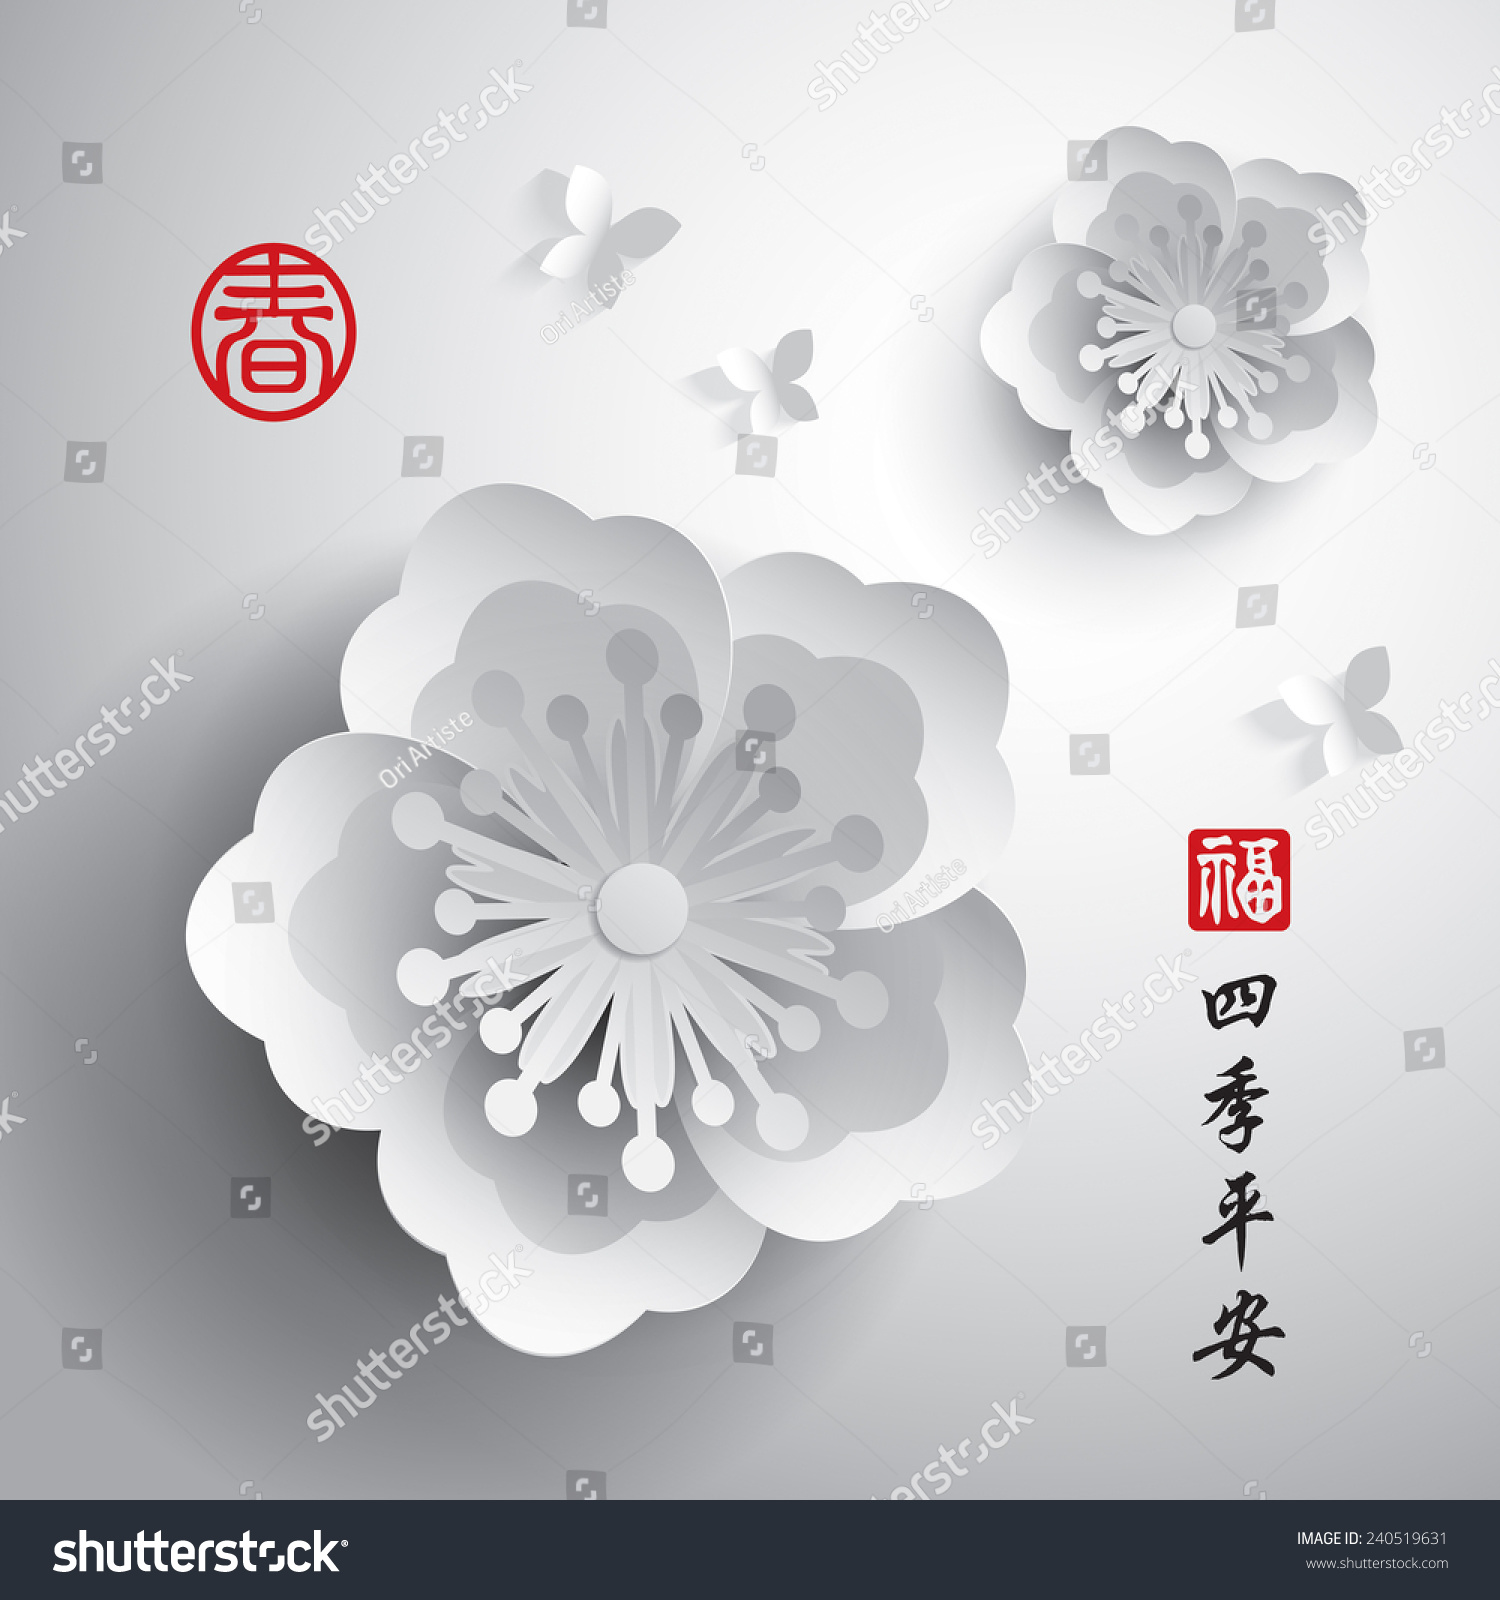 Chinese New Year Vector Paper Graphic Stock Vector (Royalty Free ...